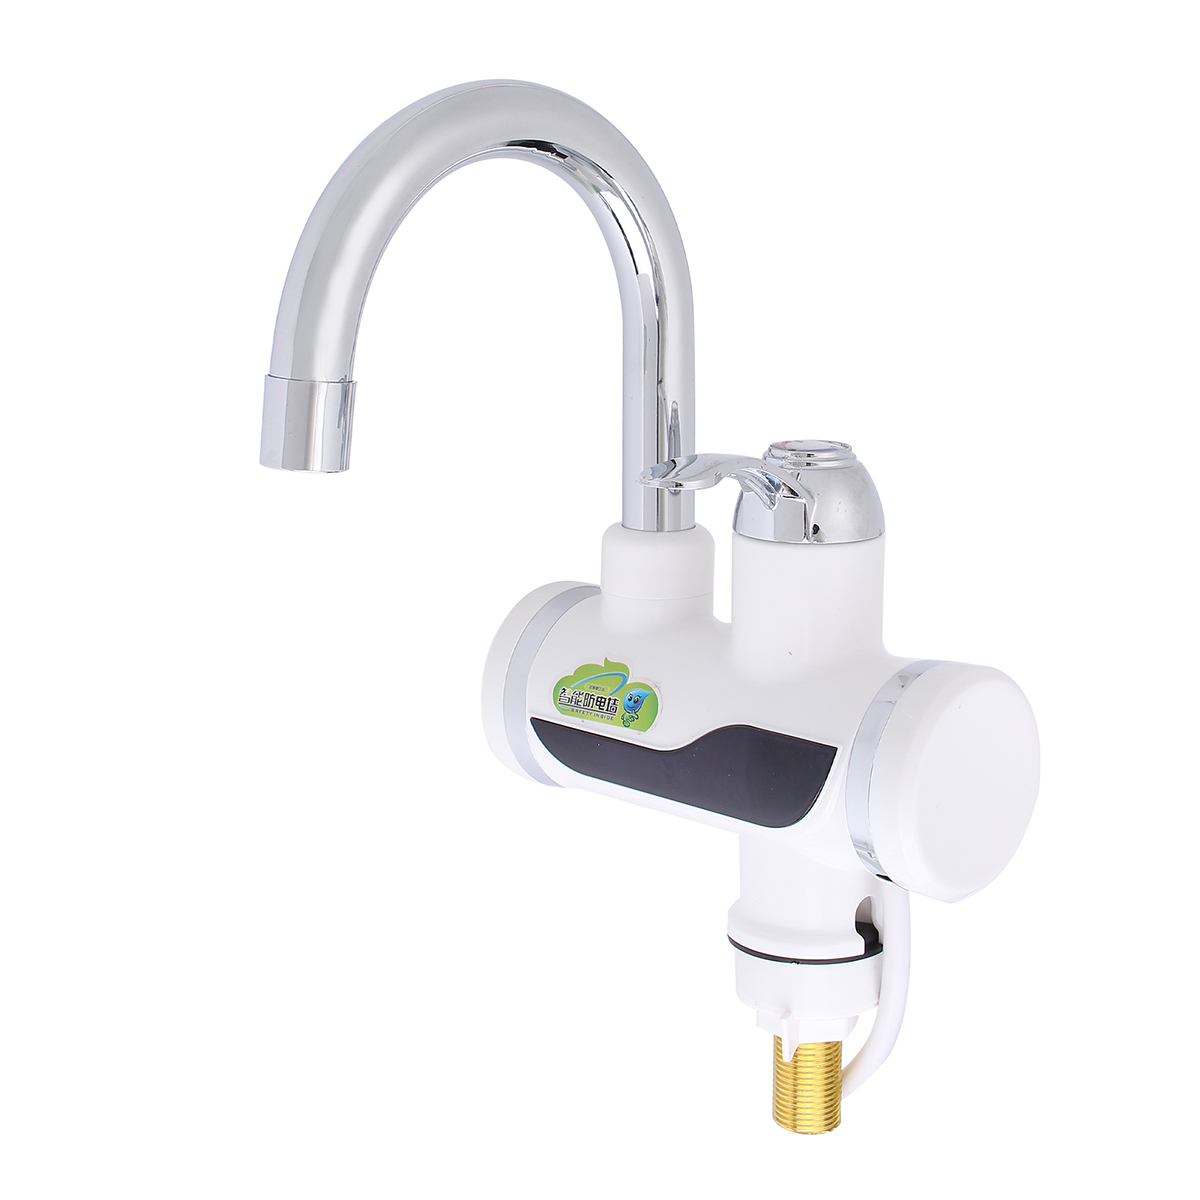 3000W 220V Electric Tankless Water Heater Instant Hot Water Faucet Heater Cold Heating Faucet Electric Water Heater